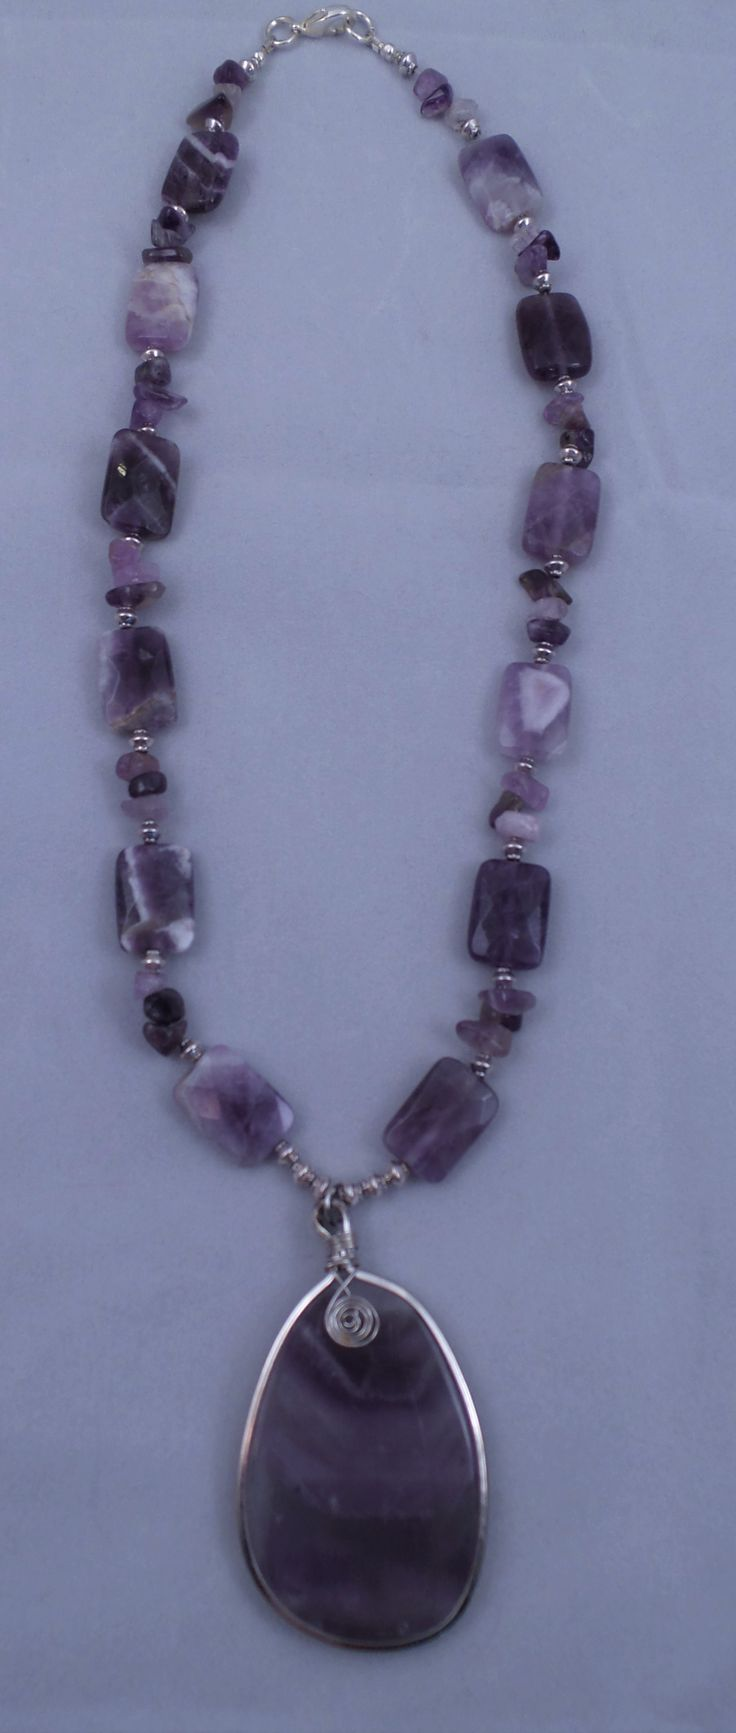 Amethyst Necklace with Amethyst Pendant1